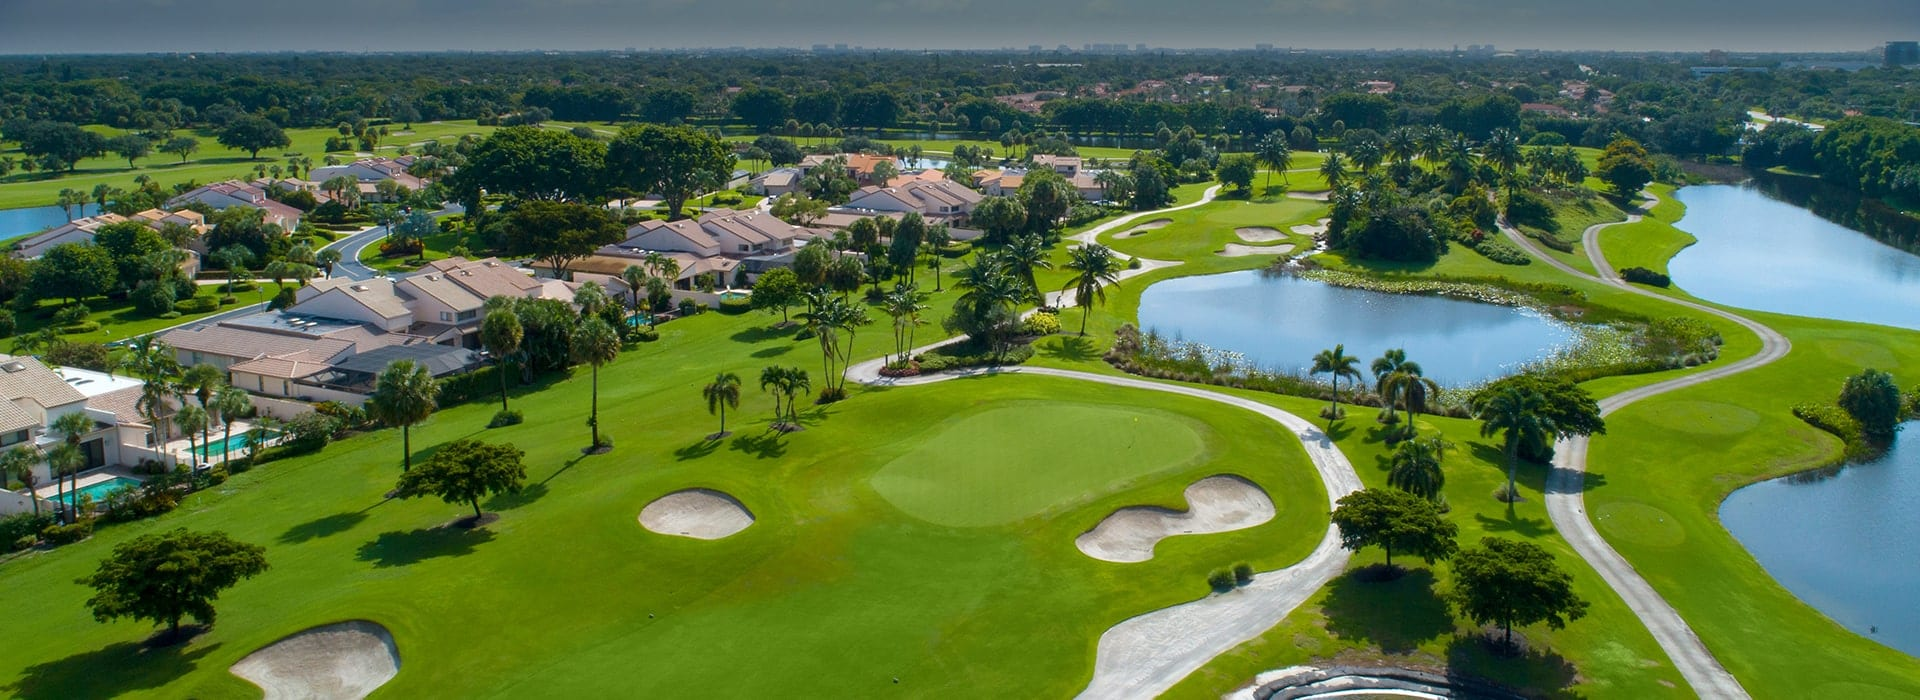 Homes along a golf course at Boca West